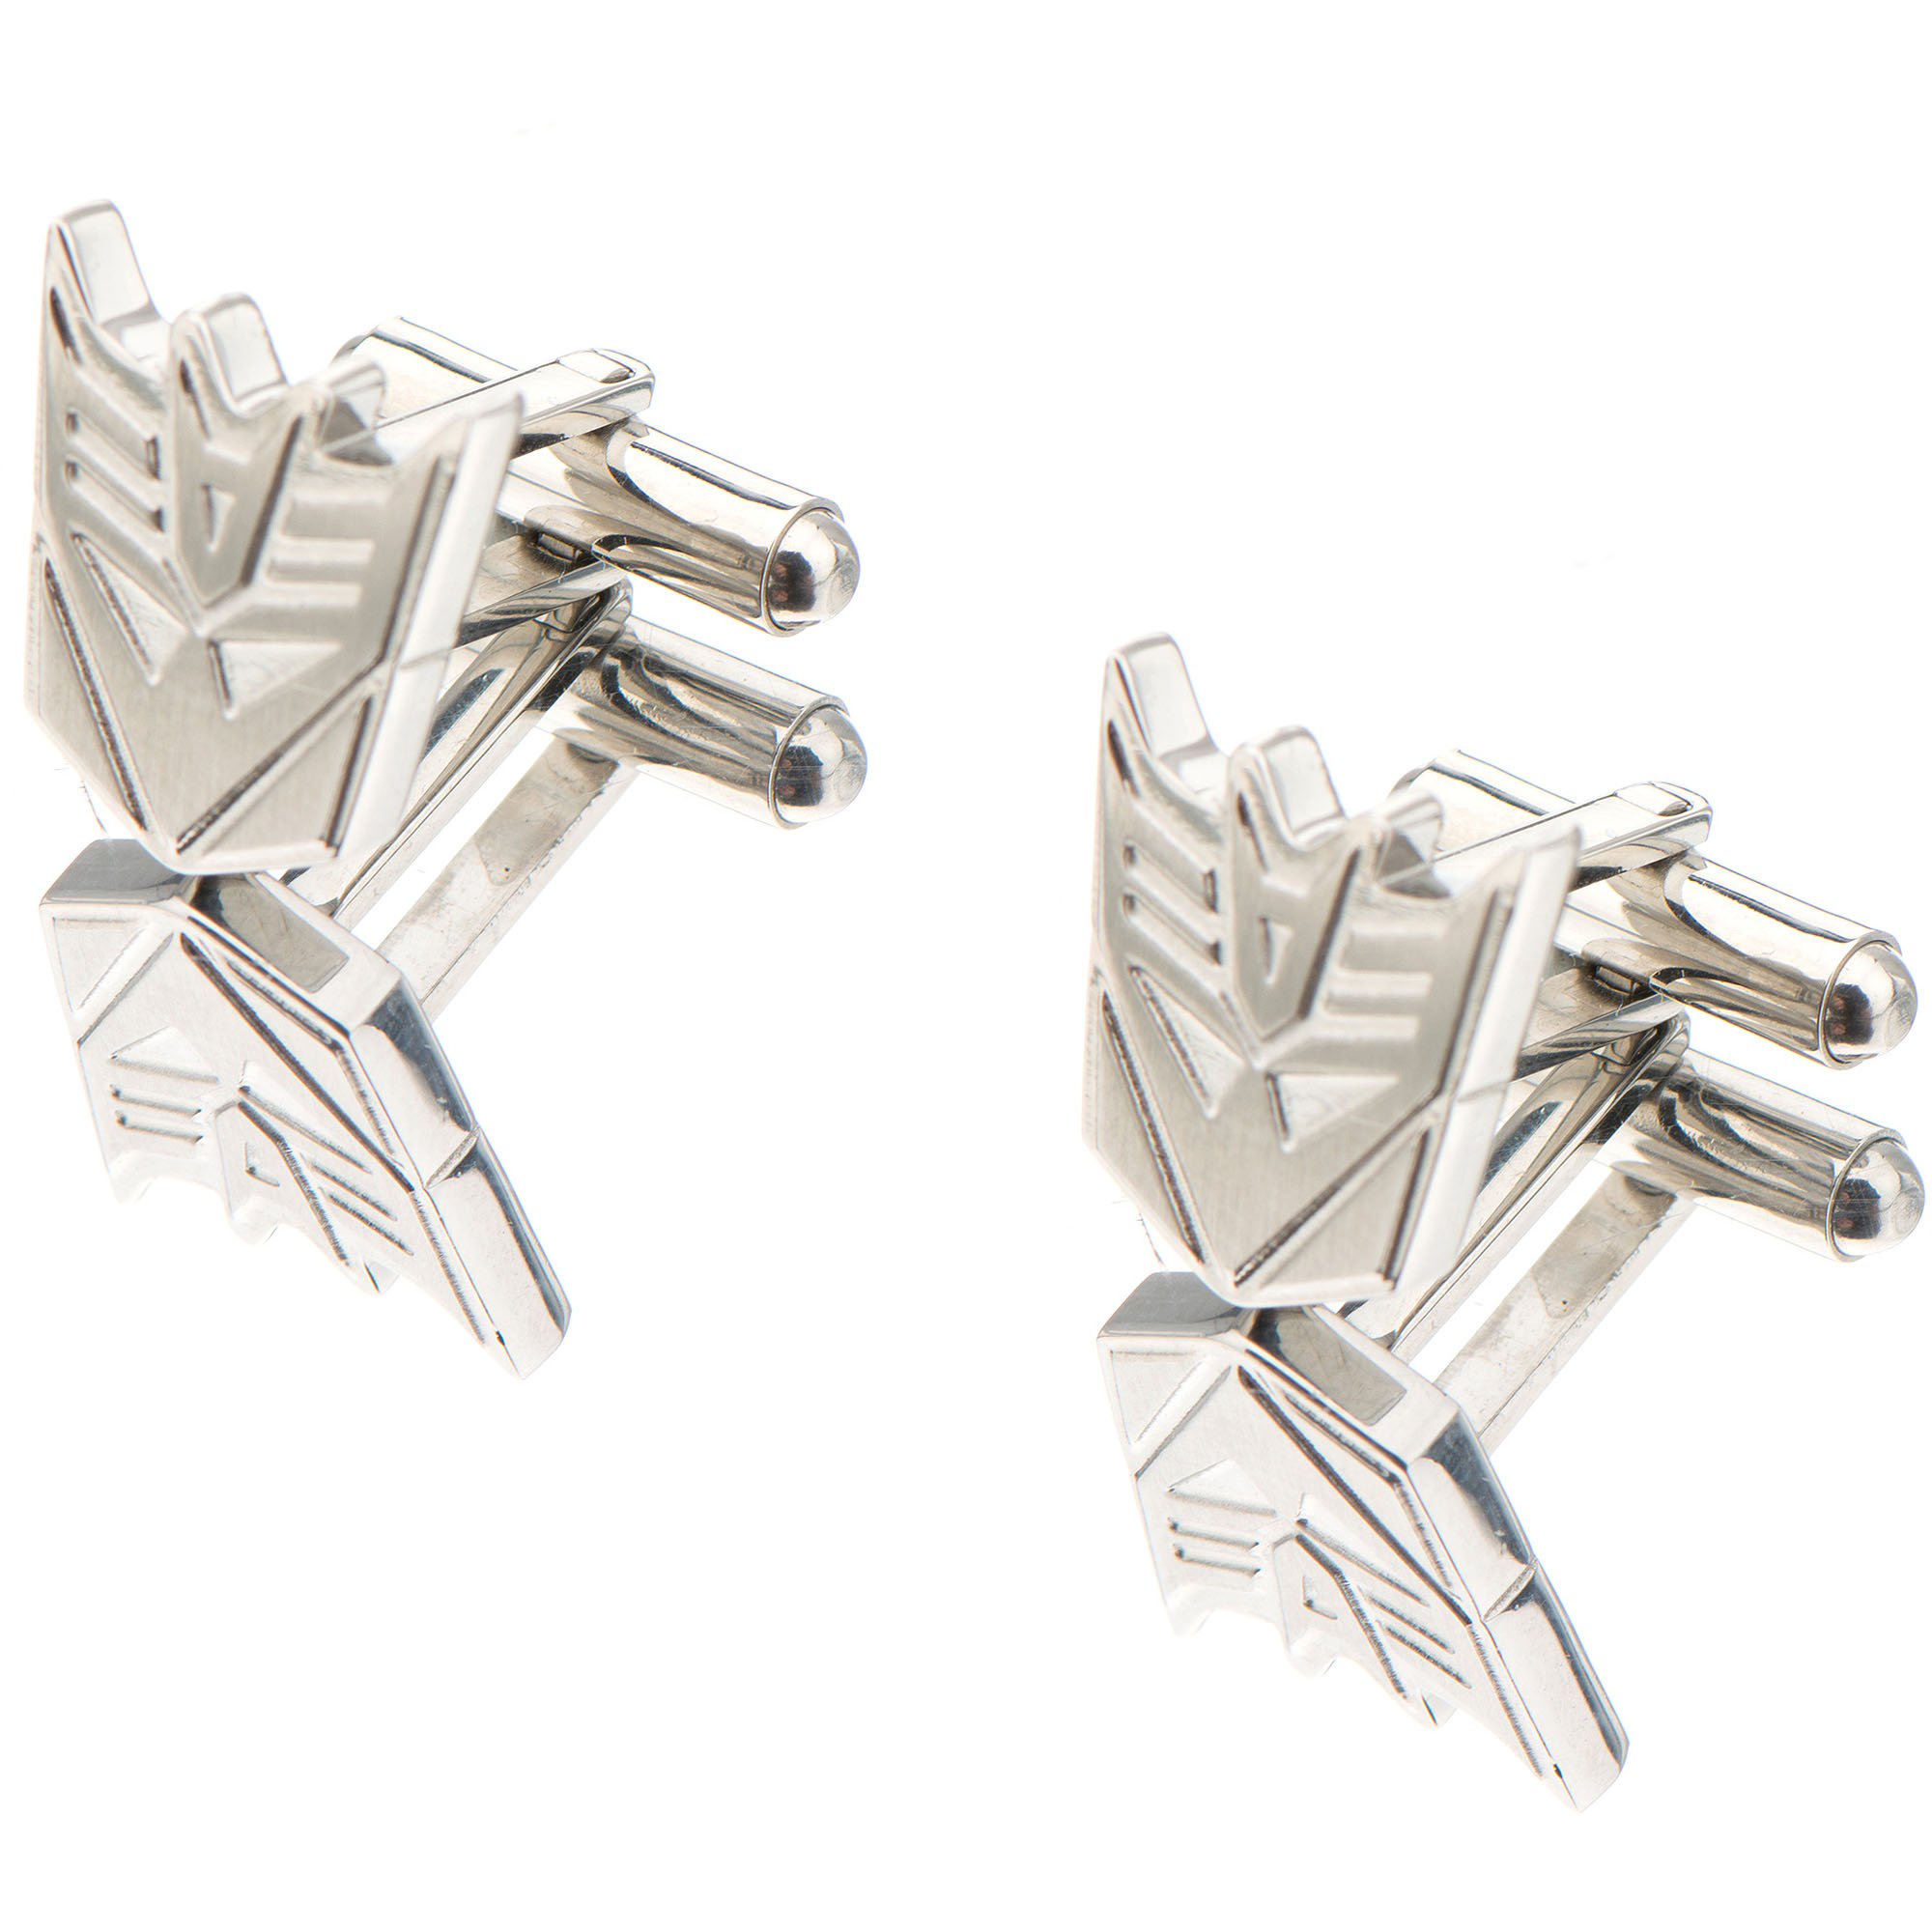 Hasbro Transformer Decepticon Steel Cufflinks